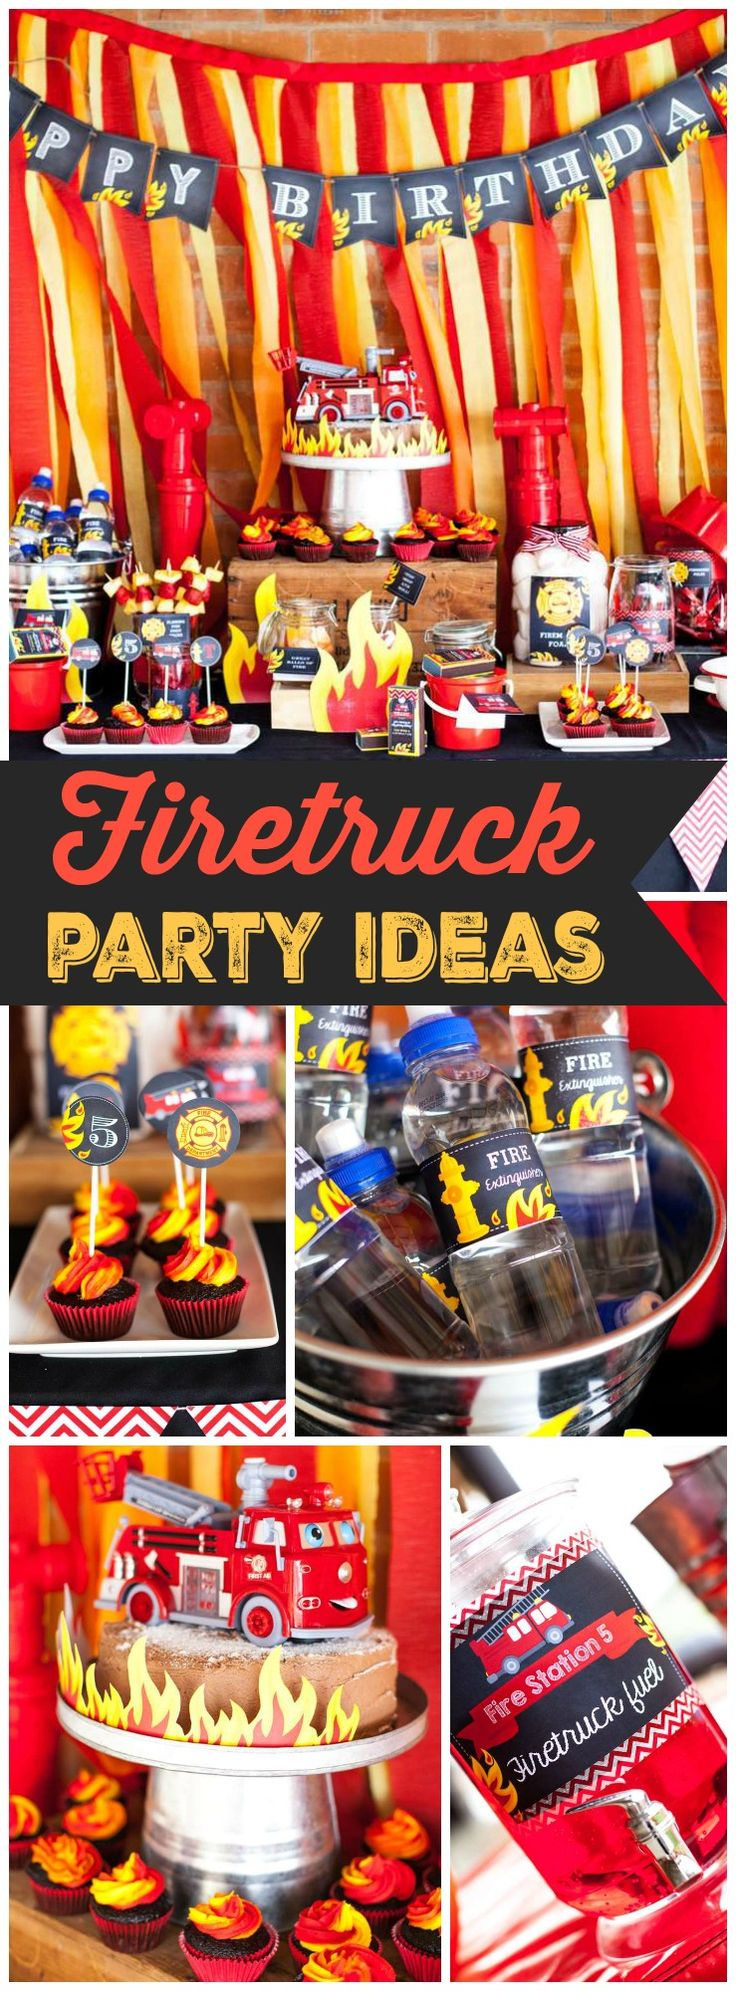 8 Best Fire Truck Firefighter Birthday Party Ideas Images On